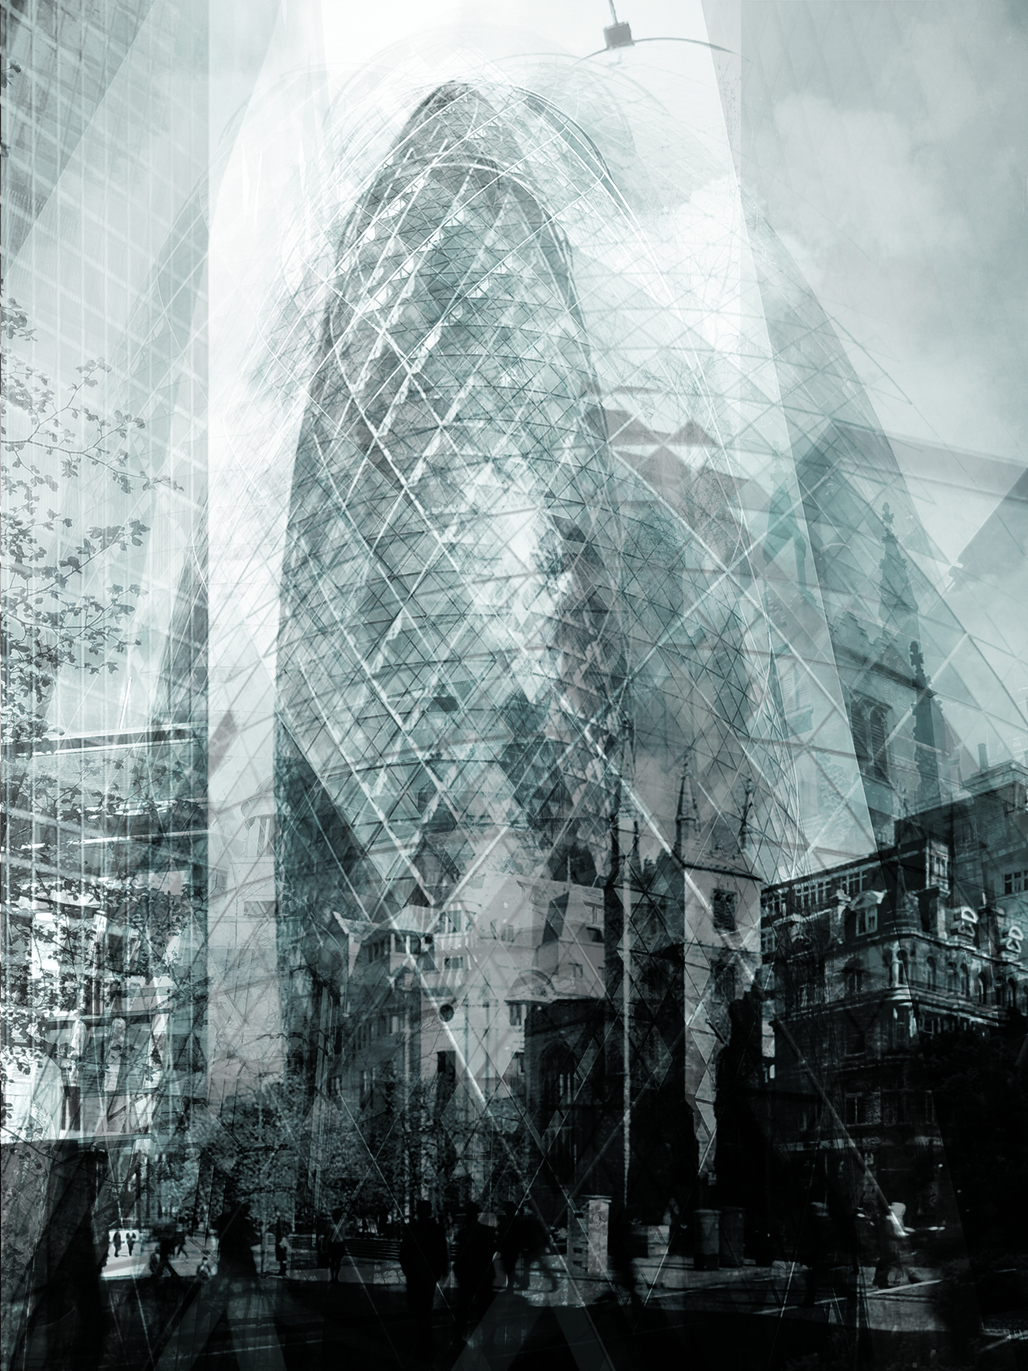 """Bryan Scheib, """"The Gherkin,"""" digital computer file, 2013. Created by superimposing dozens of the user-uploaded photographs that rank near the top of a Google Image search, this visualization by Bryan Scheib captured the tension between consistency and variation in visual representation that..."""